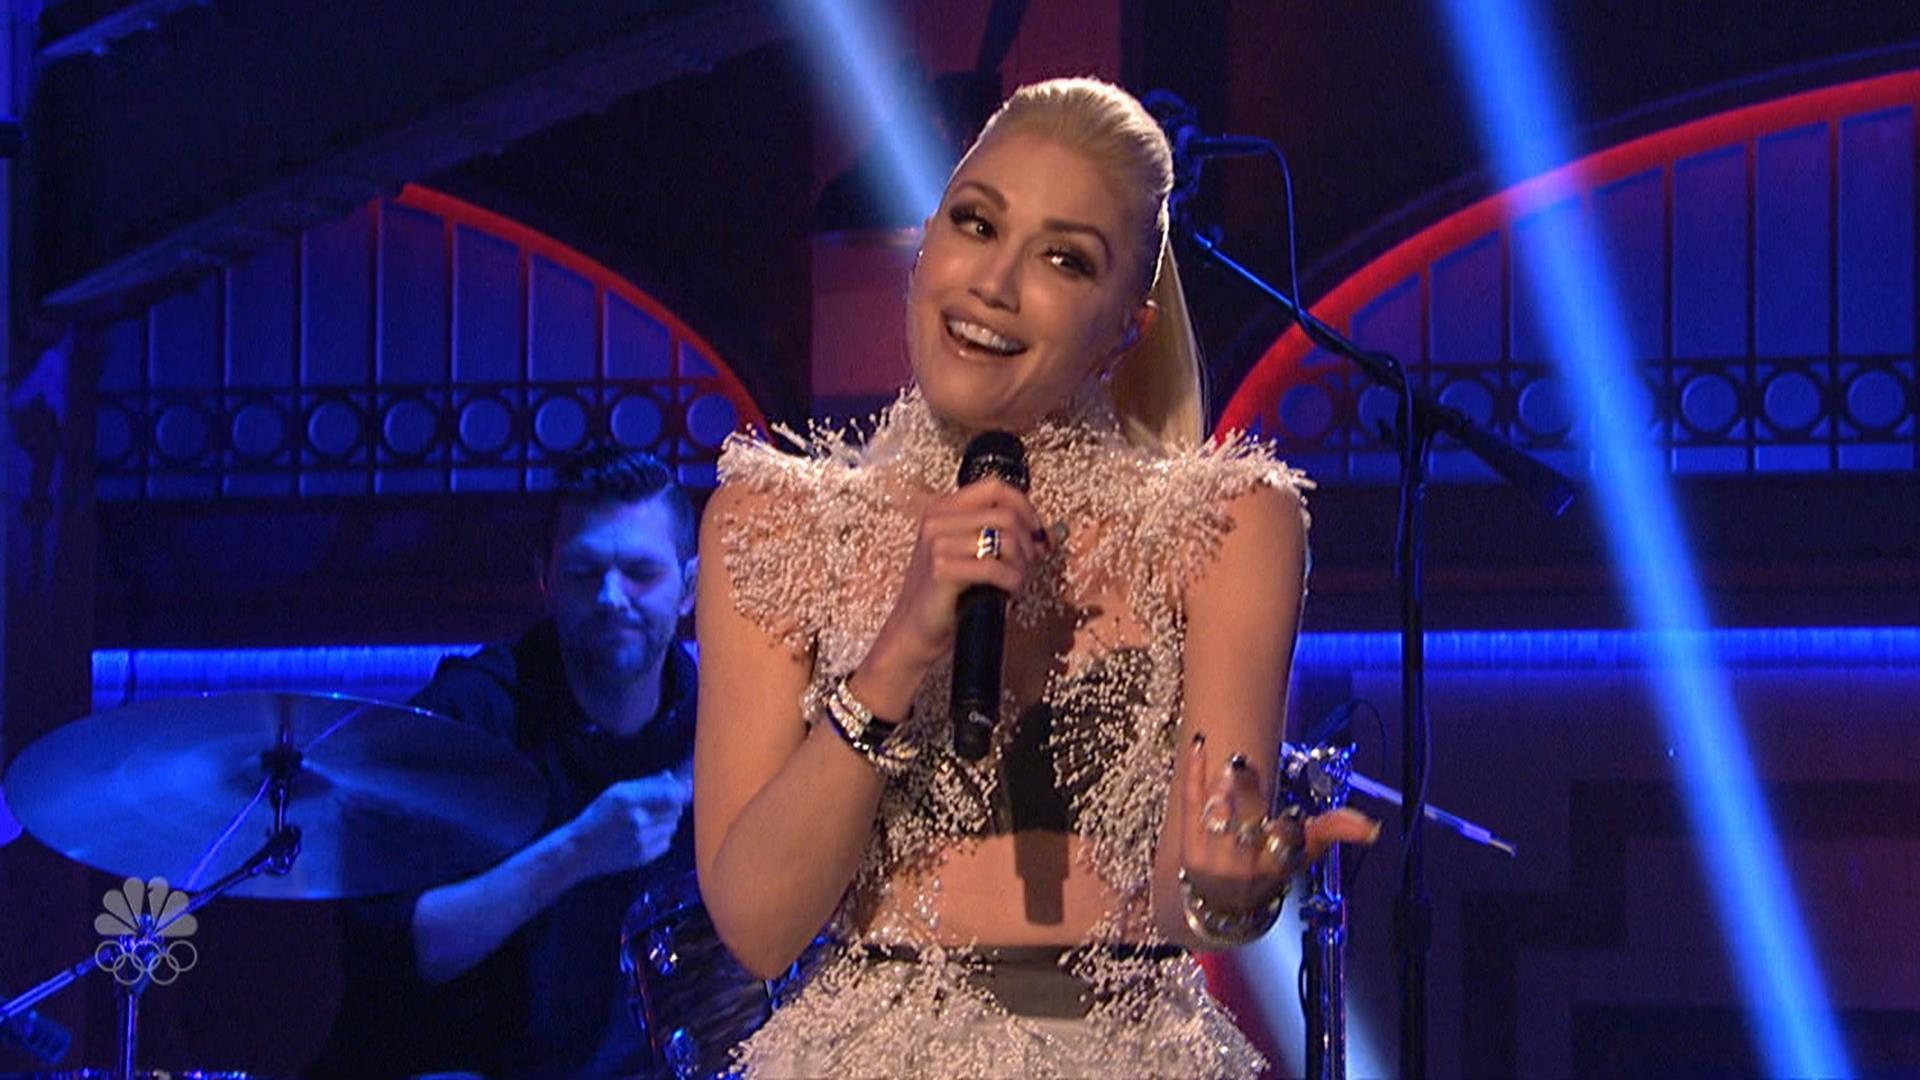 TODAY's Buzz: Gwen Stefani Performs on SNL, Rocks Racy Dress at After-Party